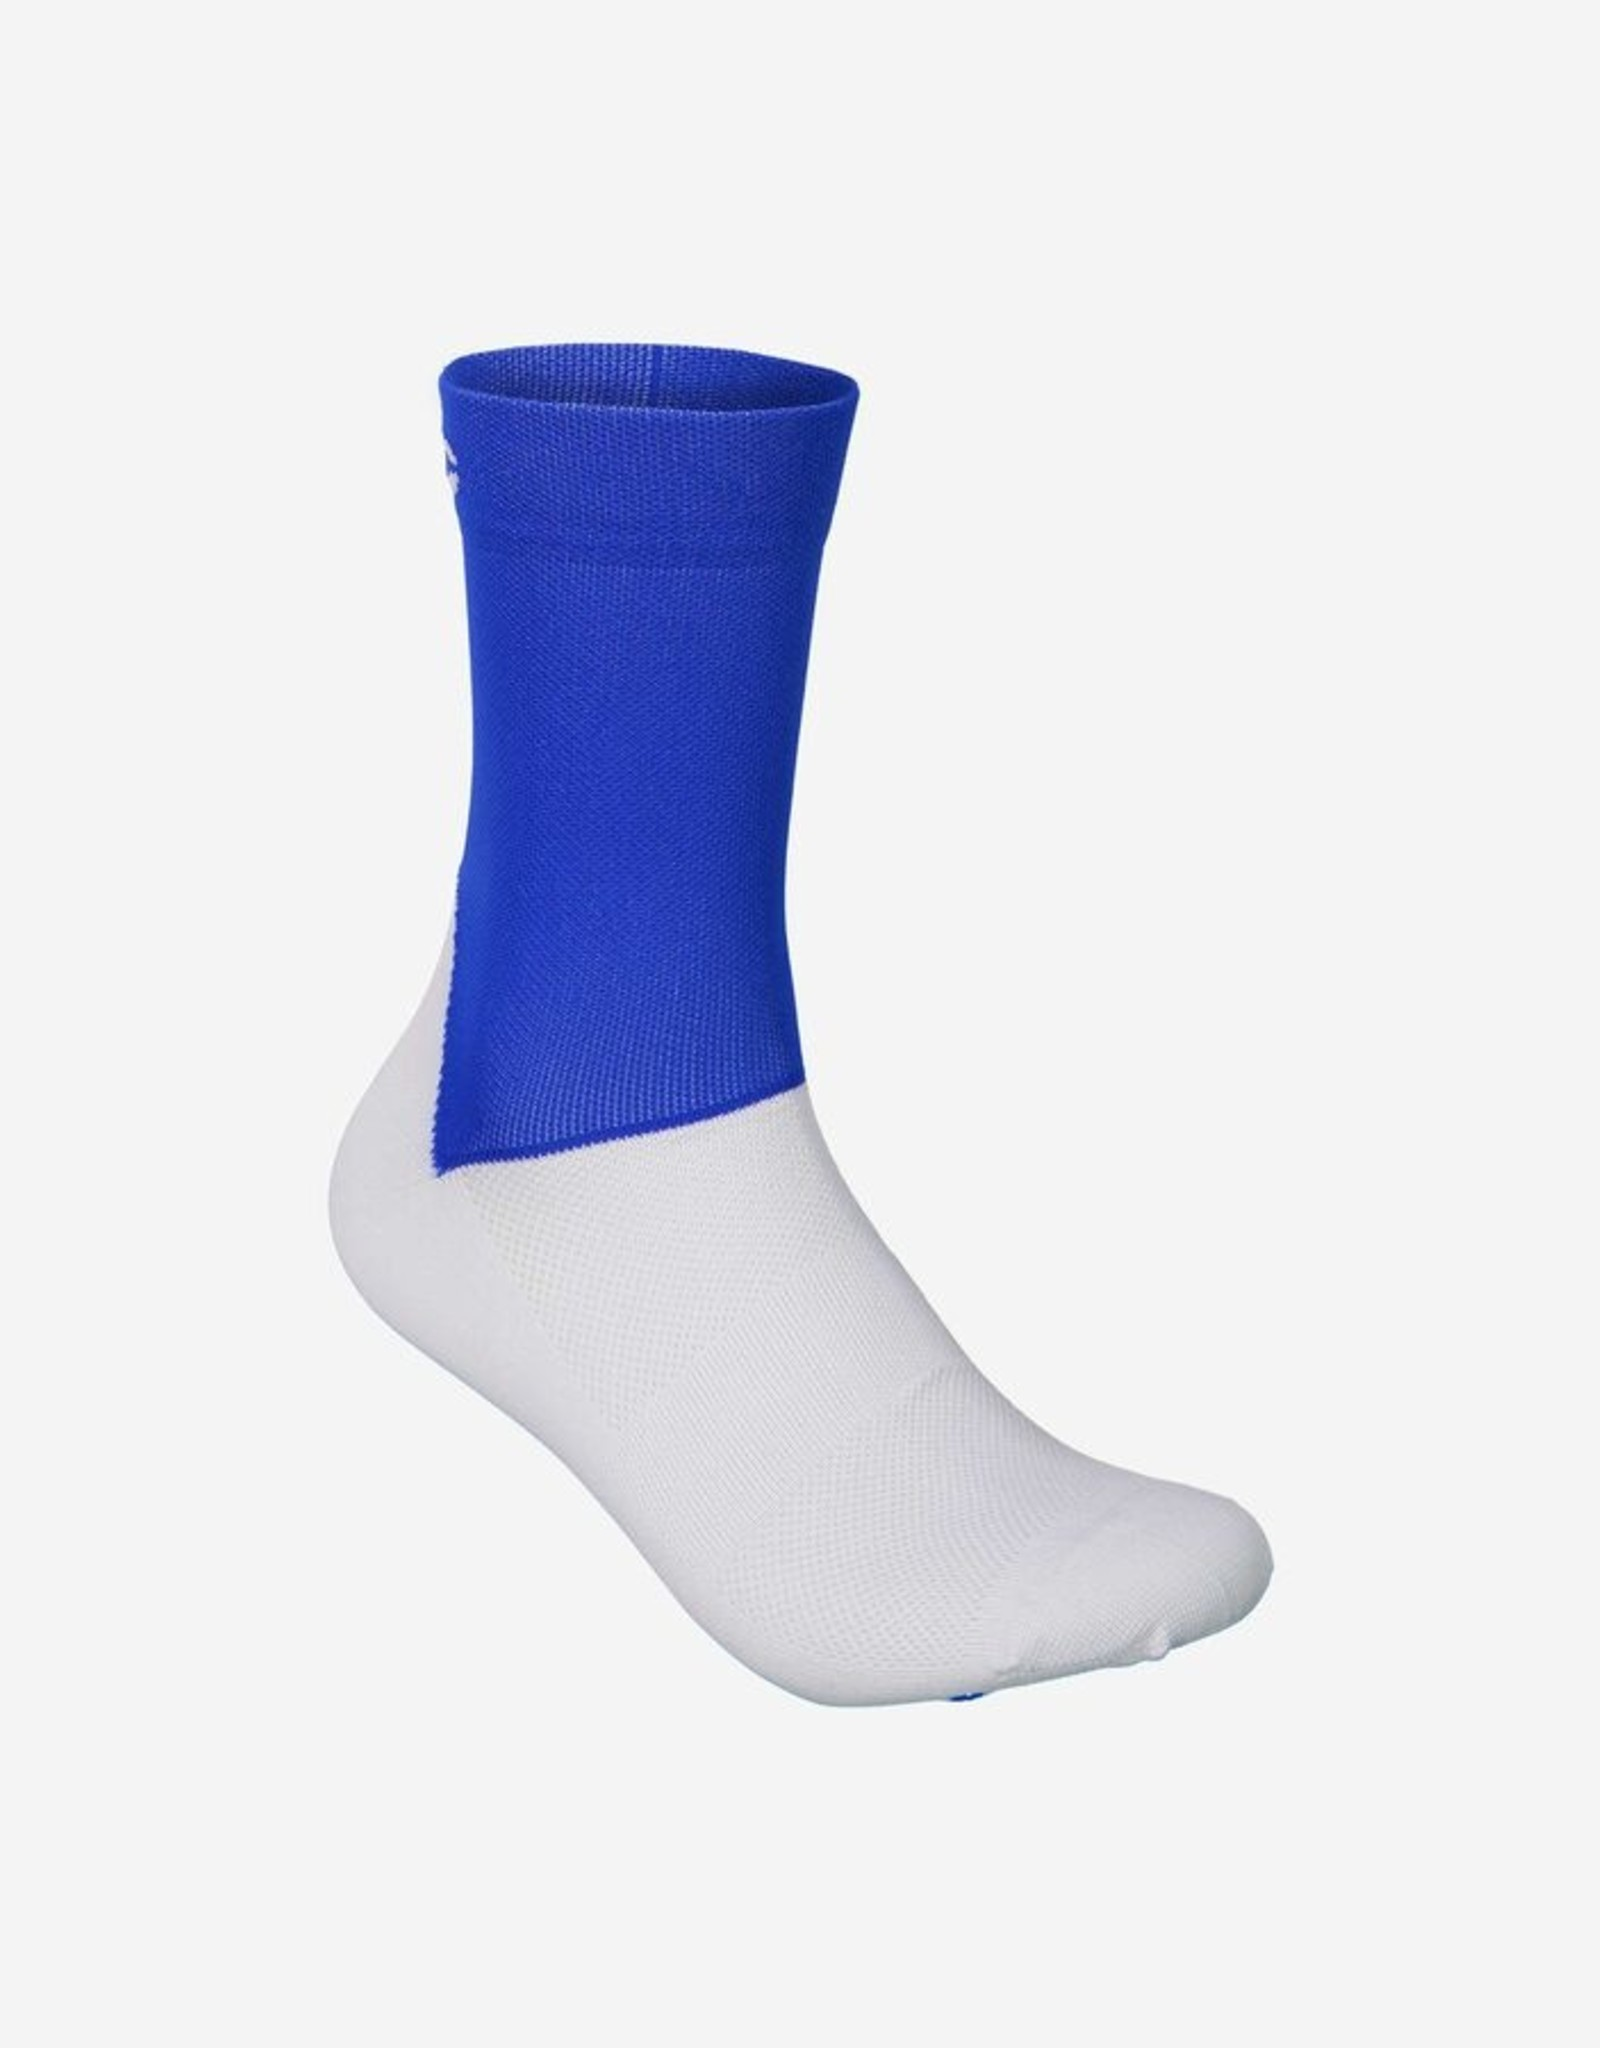 POC Essential Road sock - Draconis Blue